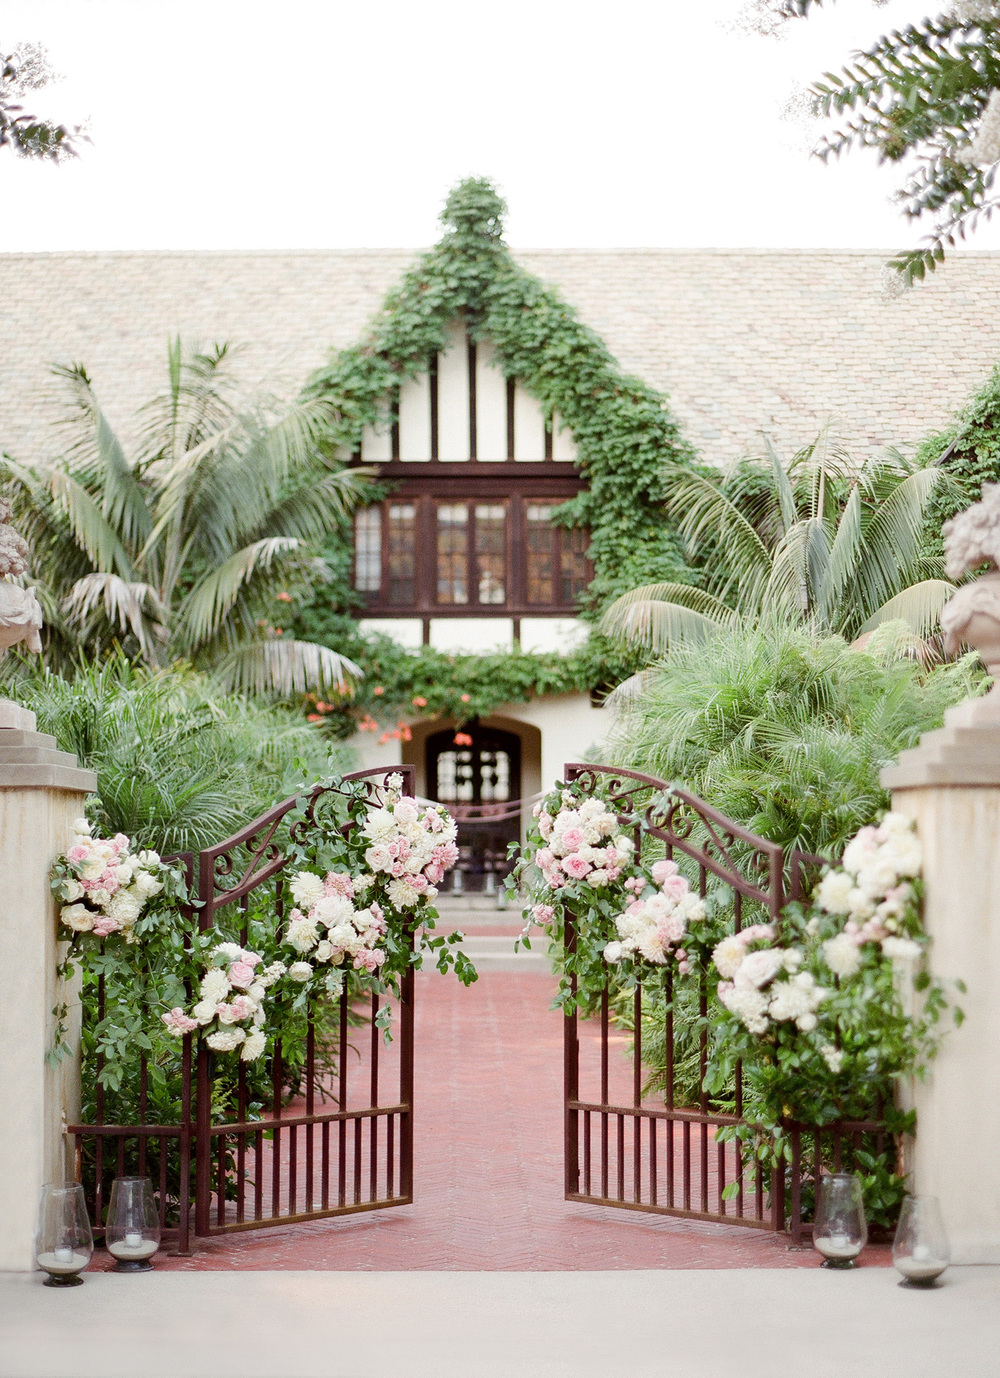 santabarbarawedding.com | Merryl Brown Events | Santa Barbara Wedding Planner | Jose Villa